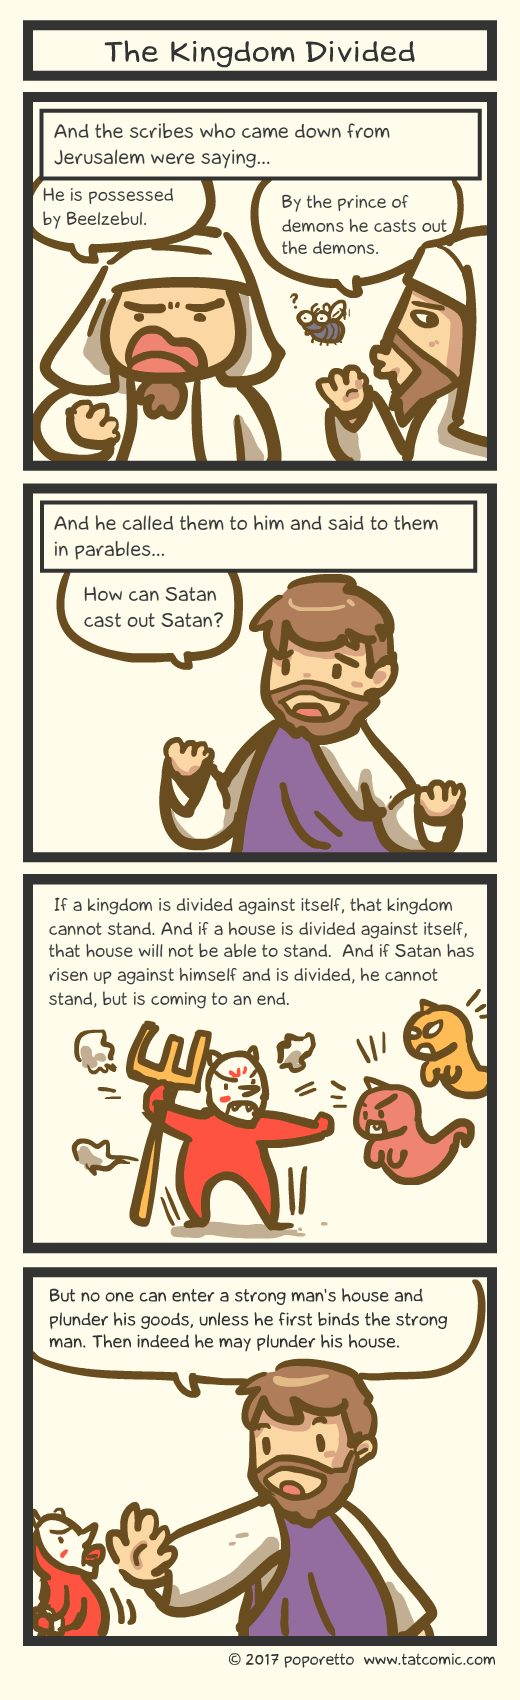 Gospel Christian comic strip jesus accused of casting out demon with beelzebub power but jesus said that kingdom divided won't stand